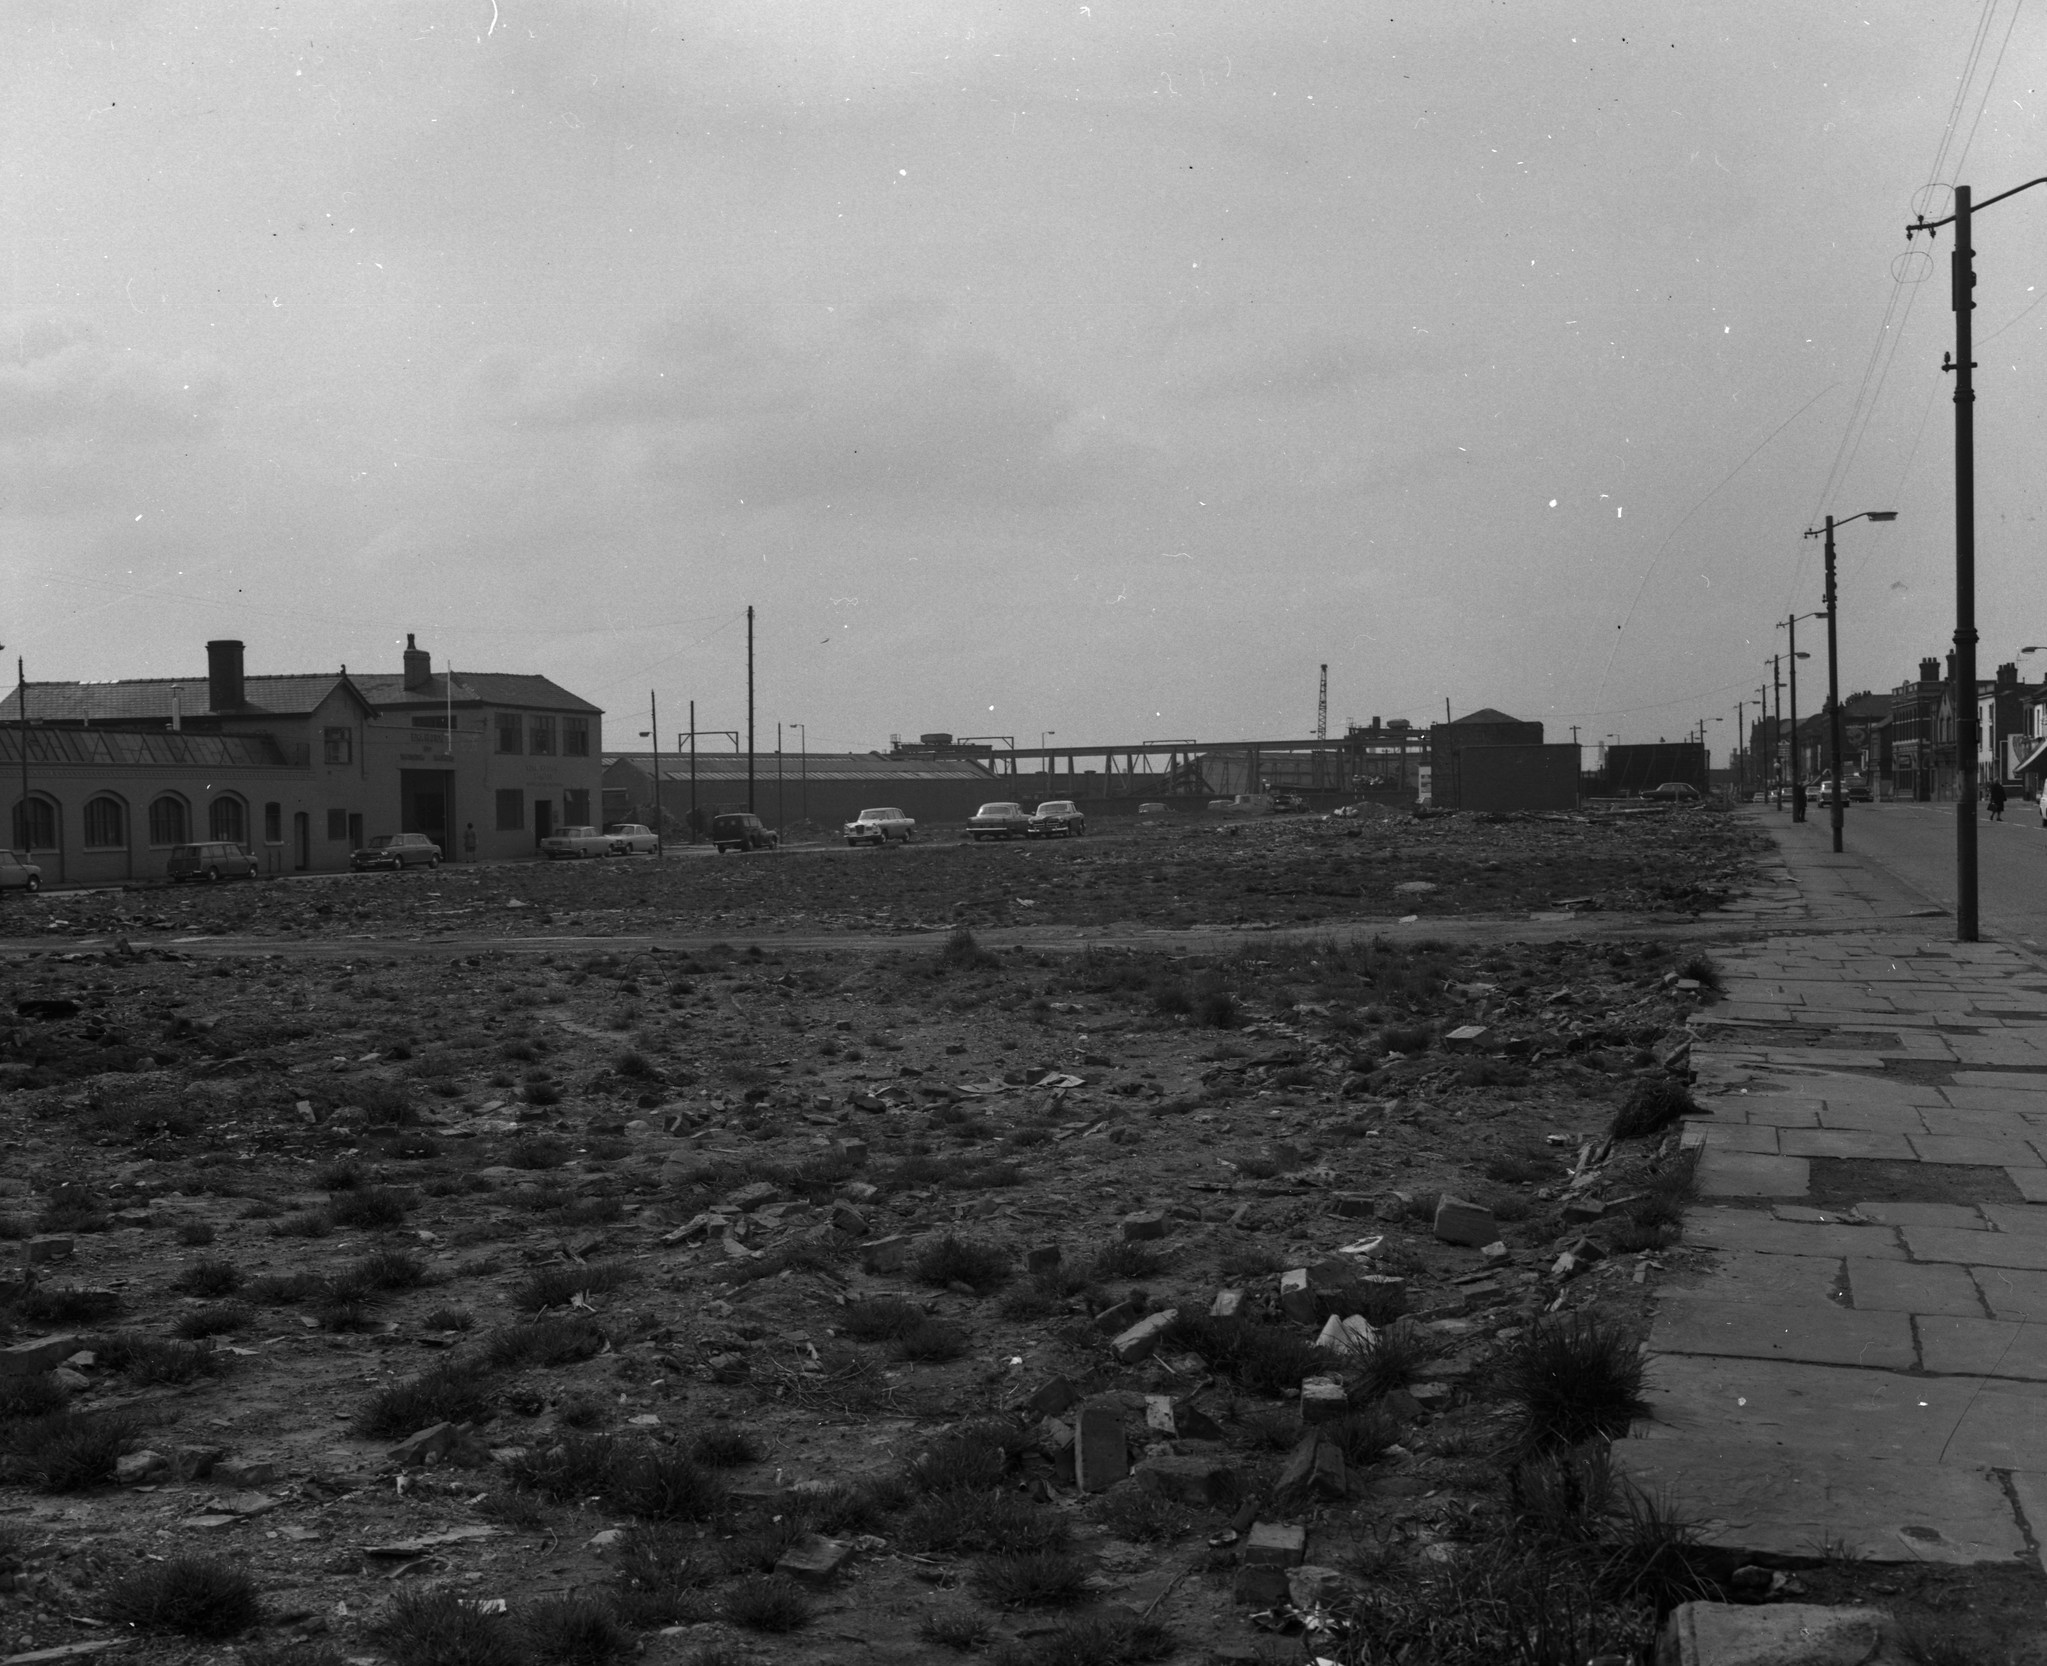 Negative No: 1968-0867 - Negatives Book Entry: 18-04-1968_Estates_Wythenshawe-Airport Etc_Various Sites